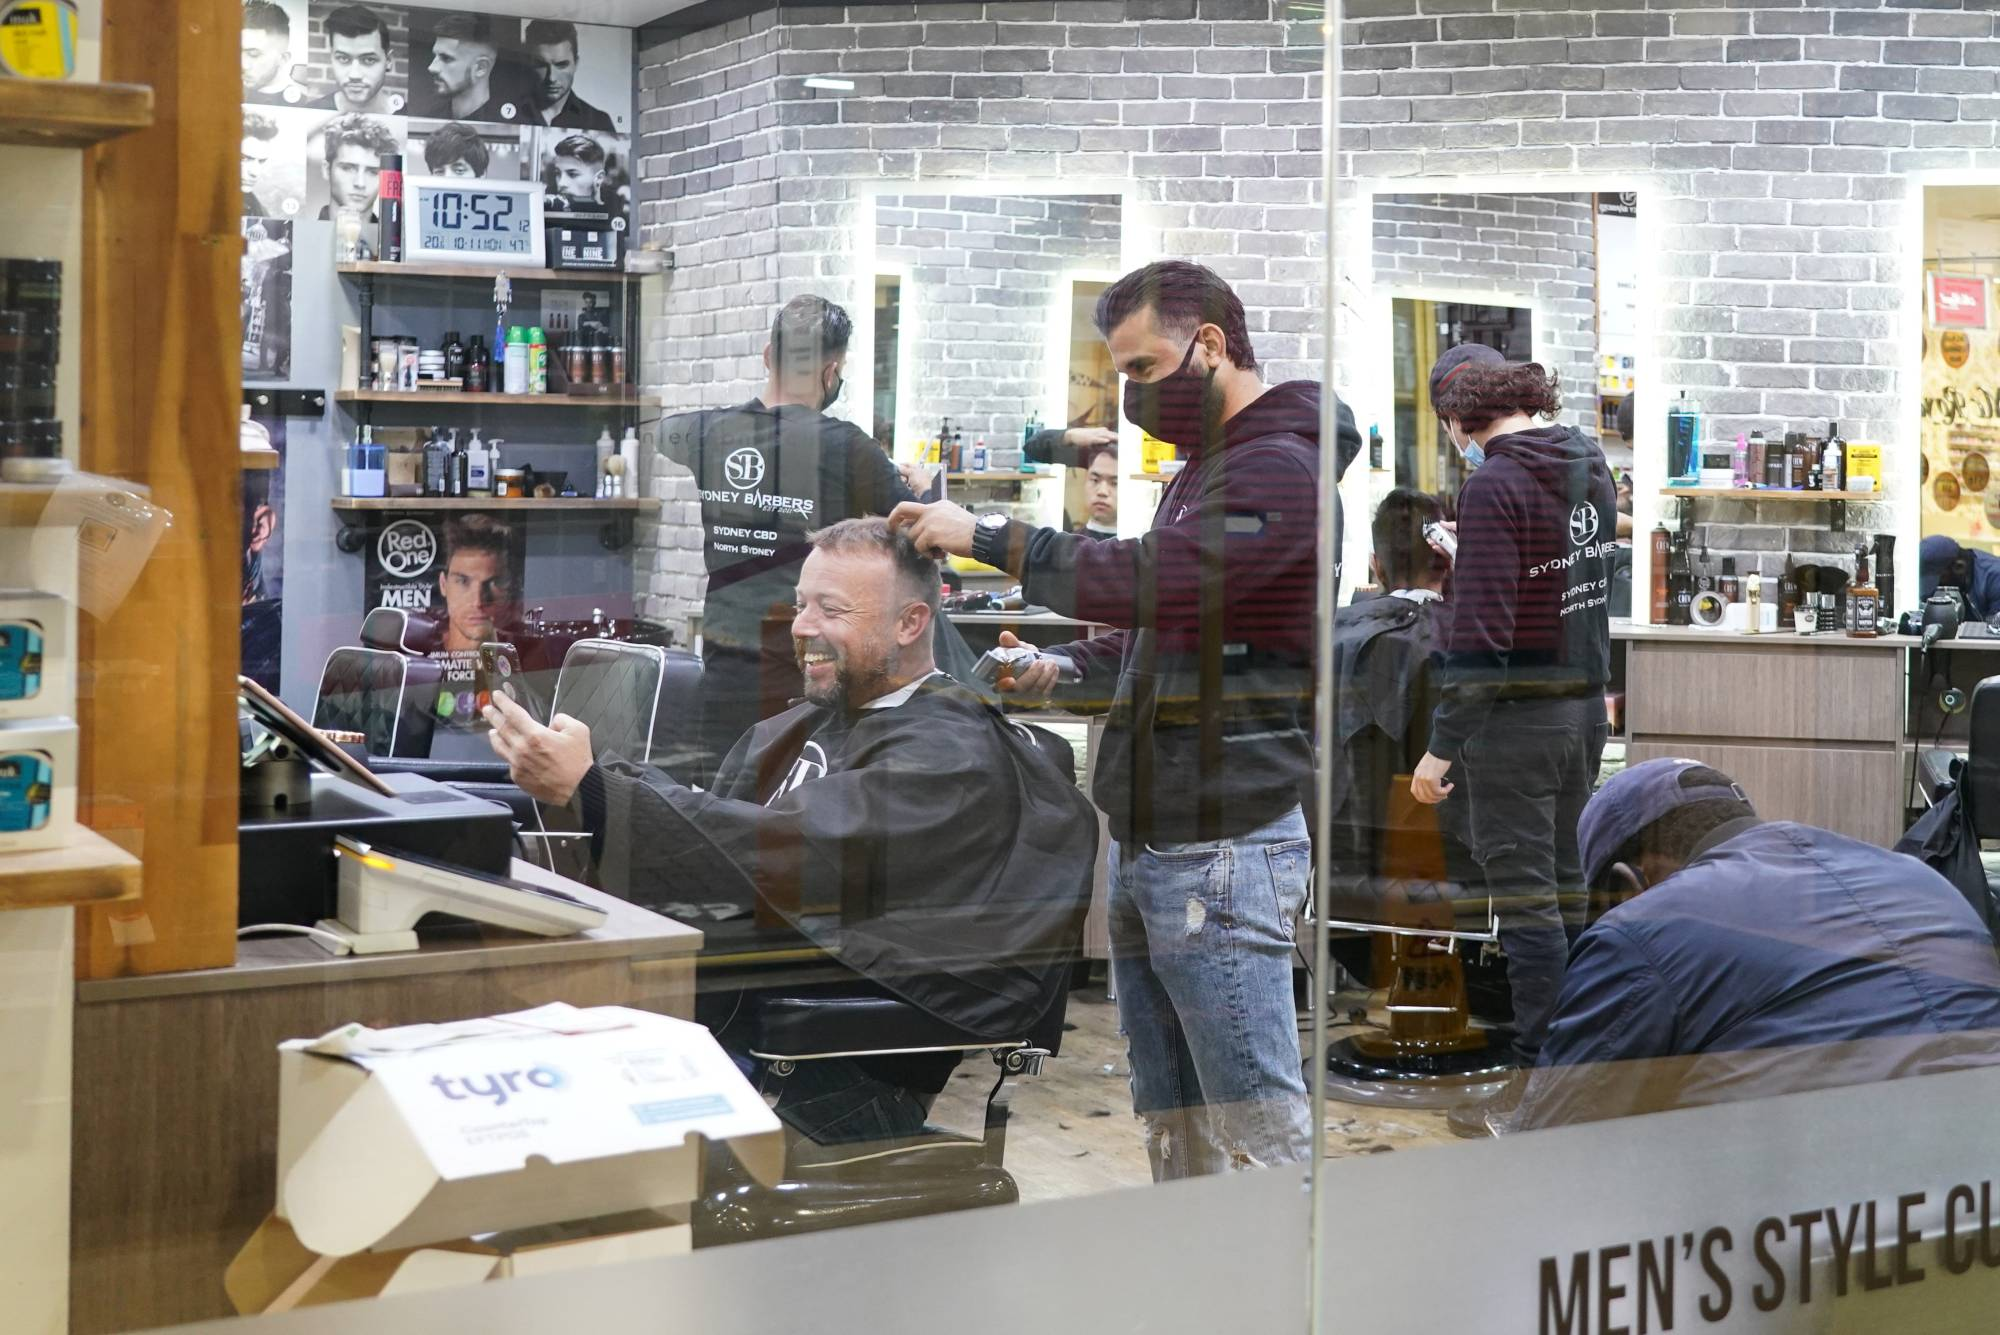 A city center barber shop in Sydney on Monday  | REUTERS